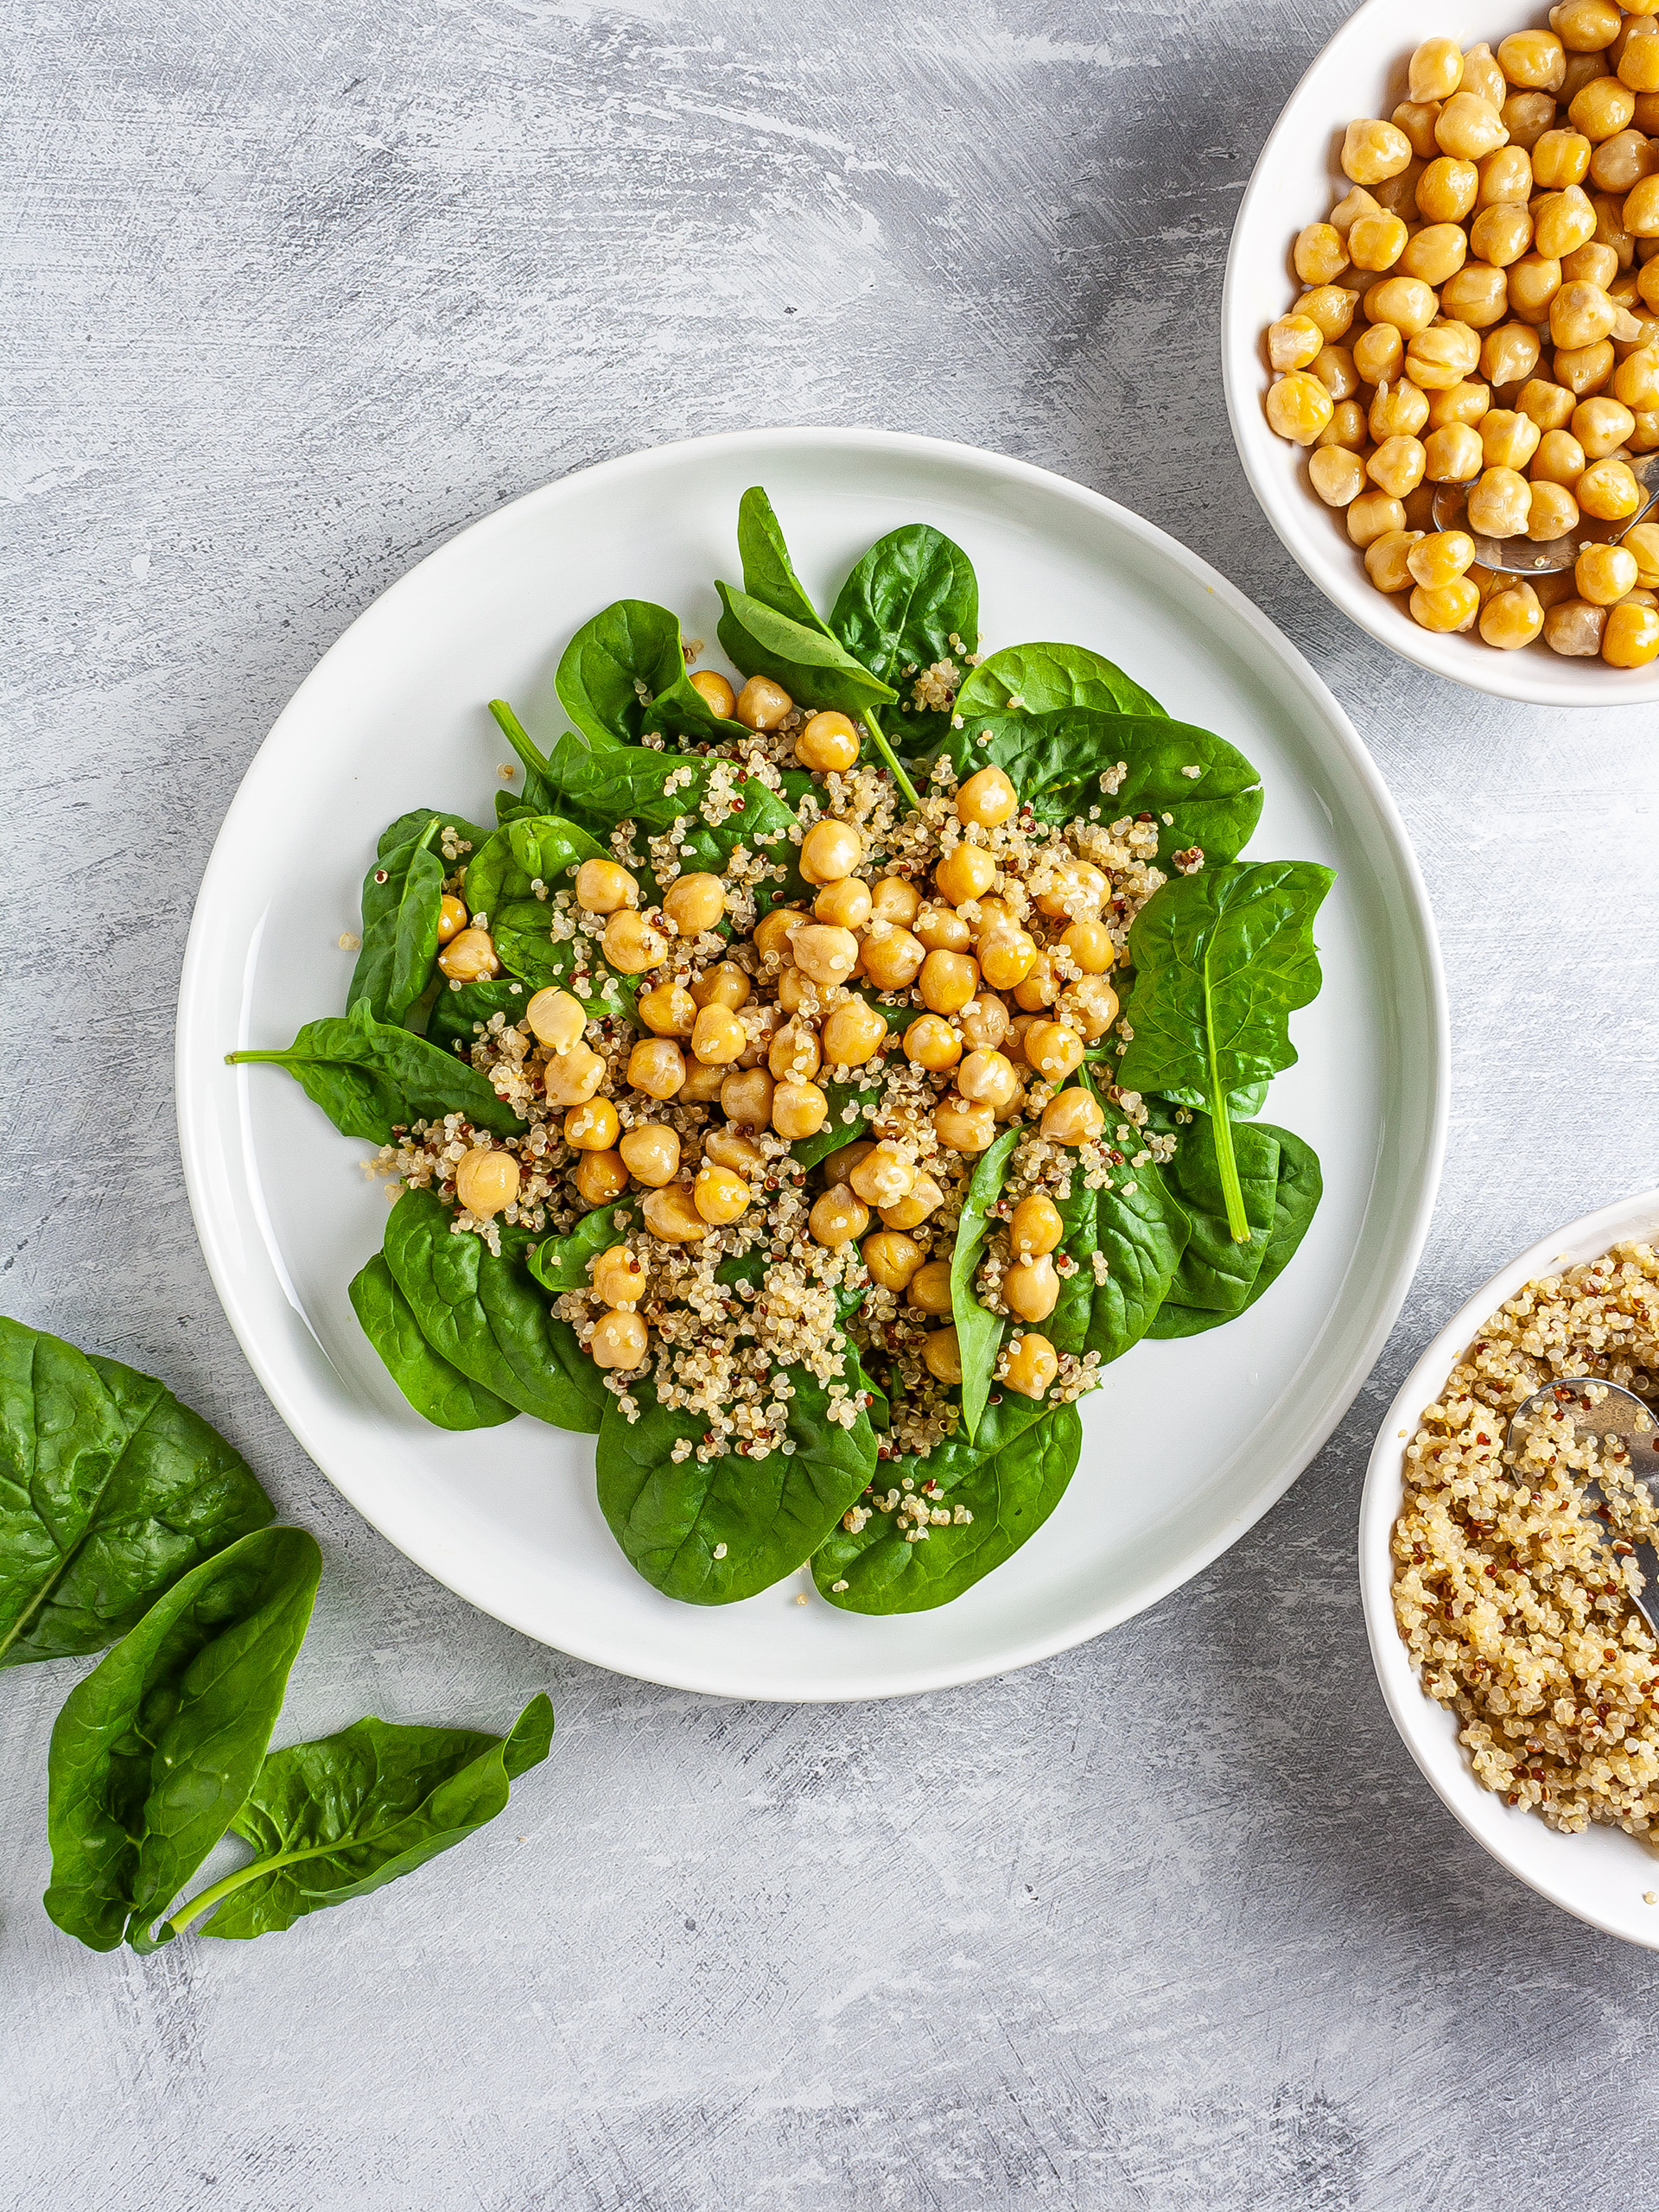 Spinach, chickpeas, and quinoa salad